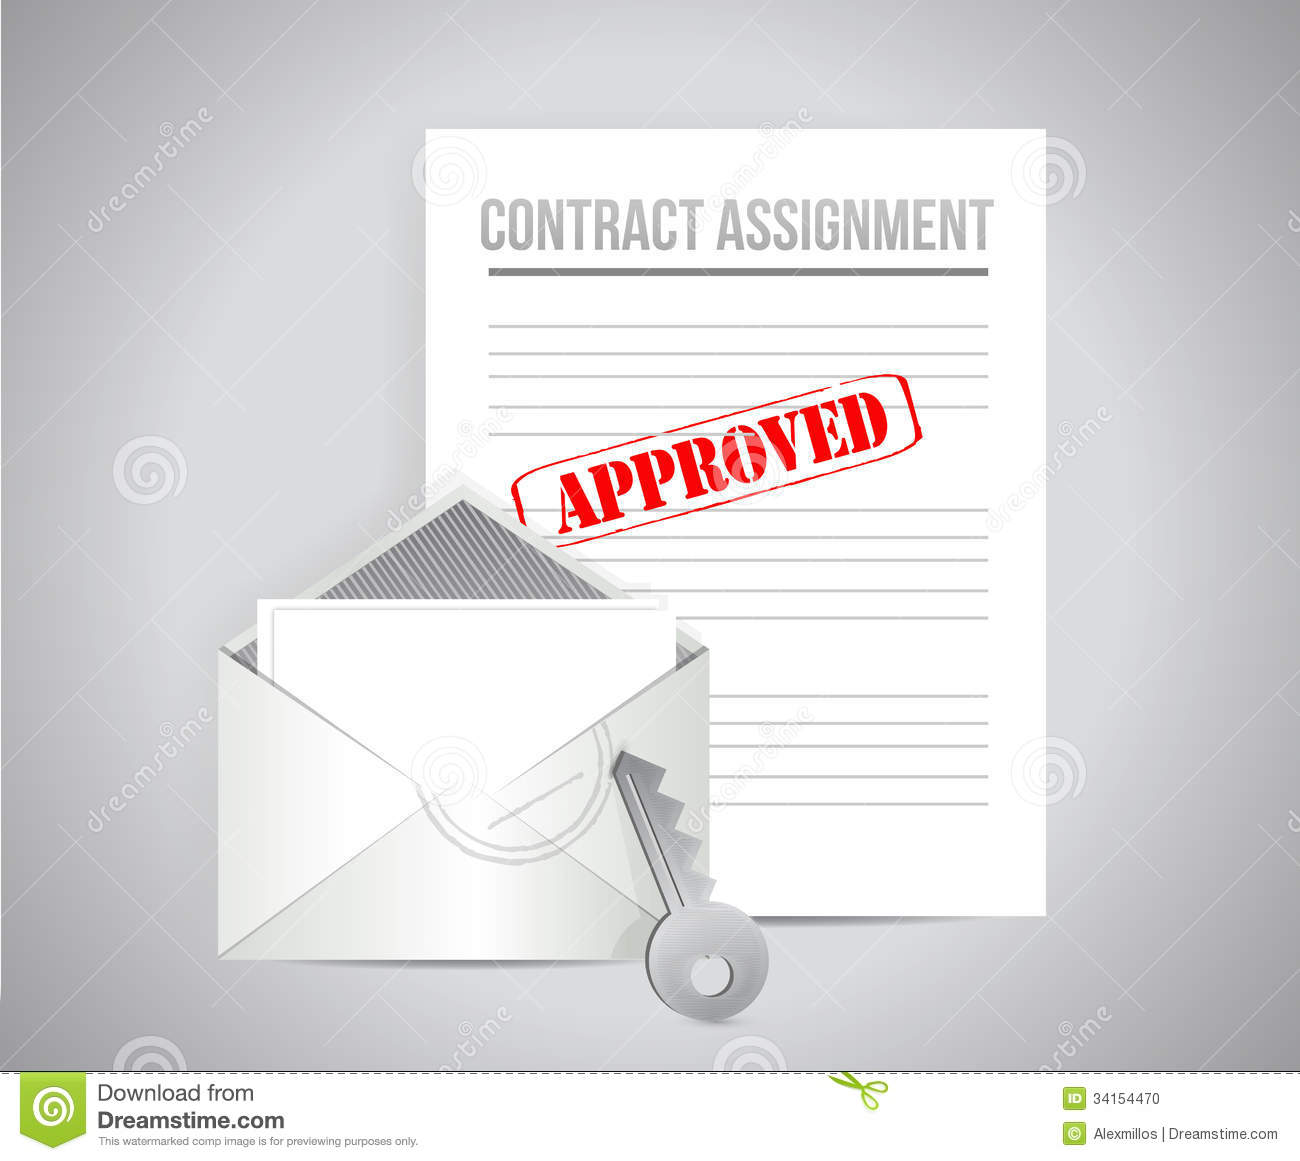 Contract Assignment Approved Concept Illustration Photo – Assignment of Contract